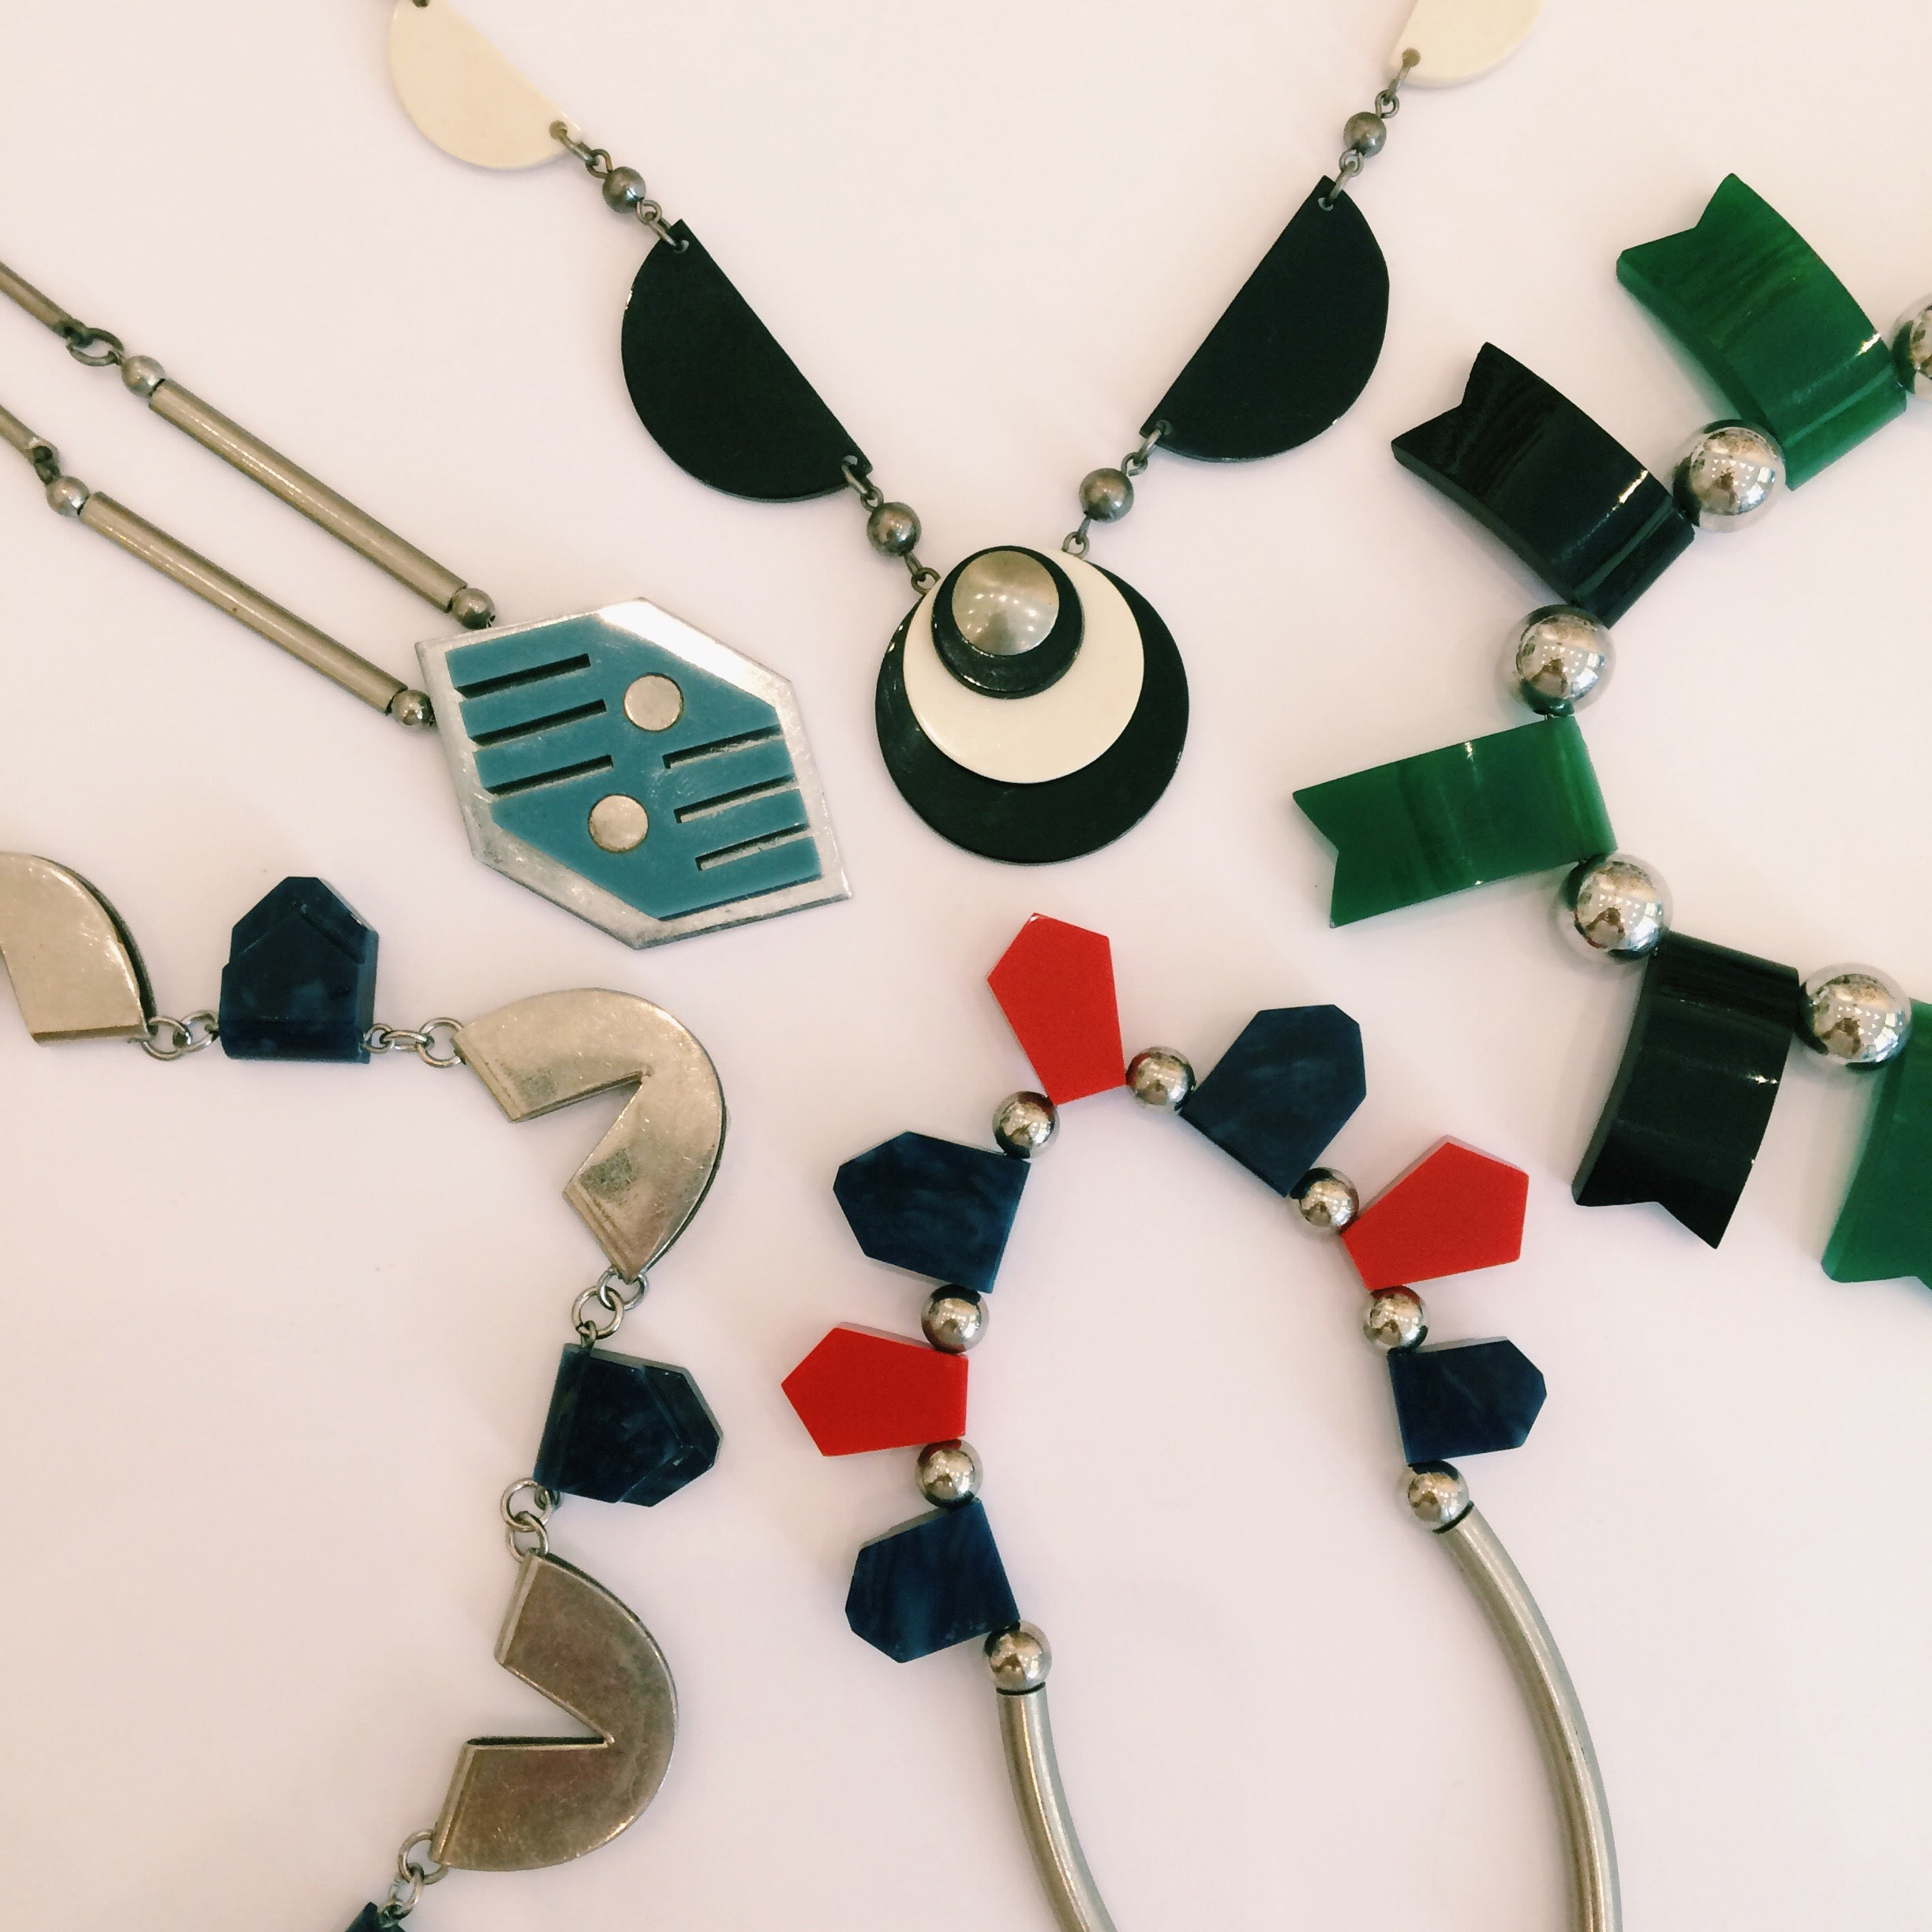 A selection of Jakob Bengel necklaces available to shop online Harlequin Market